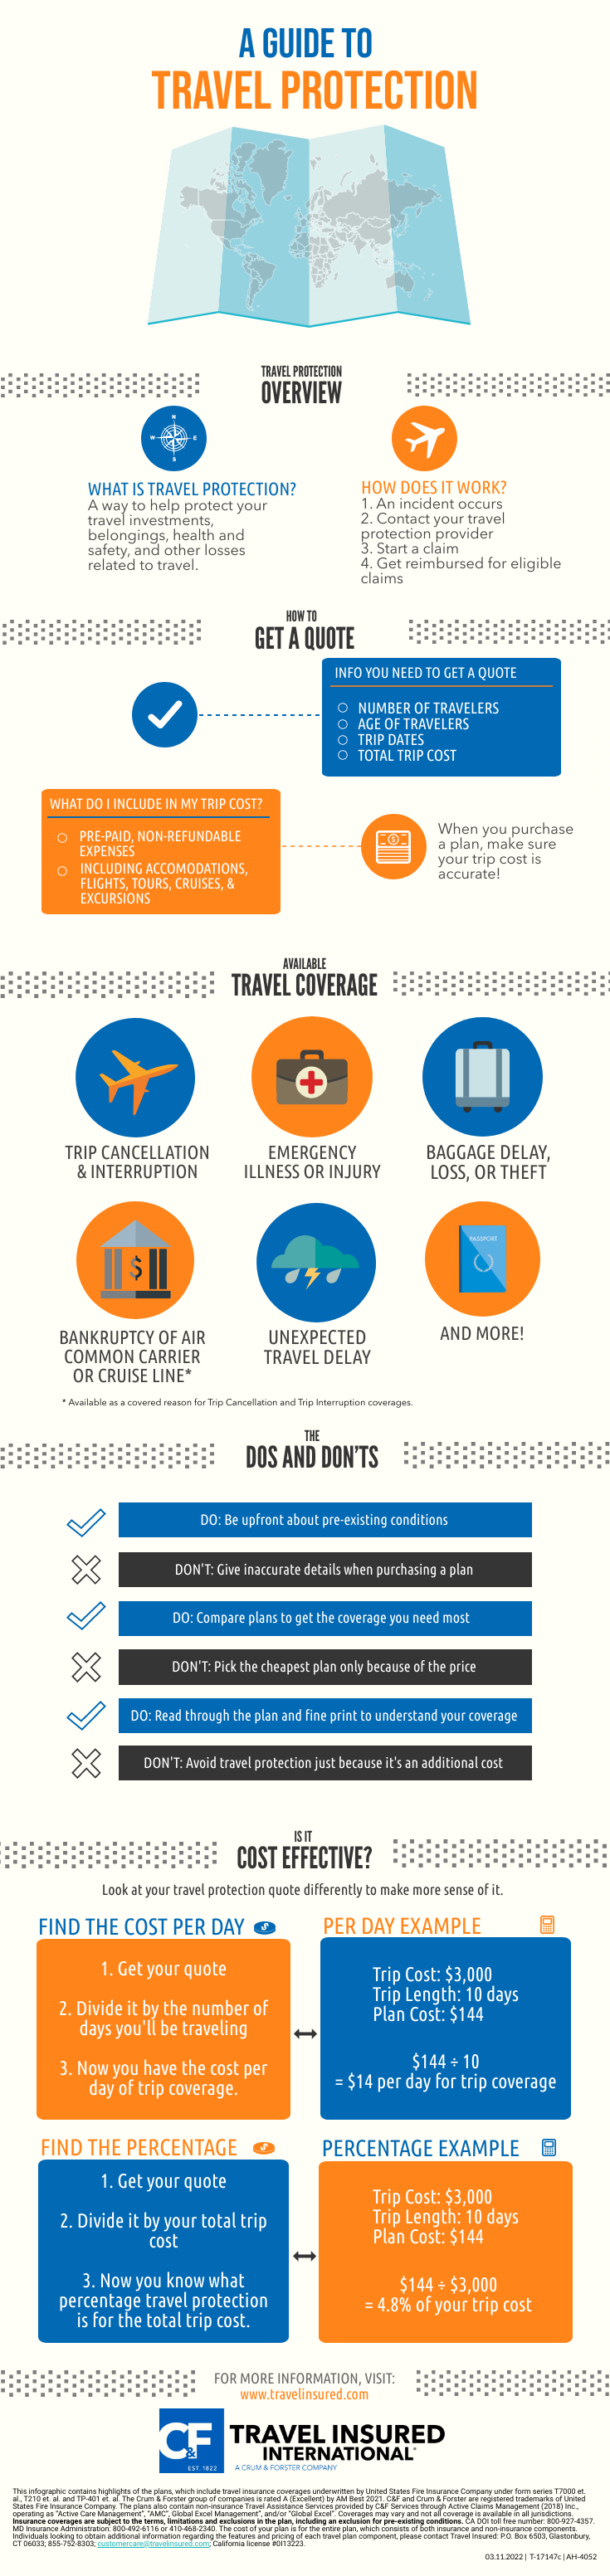 Infographic: Guide to Travel Protection